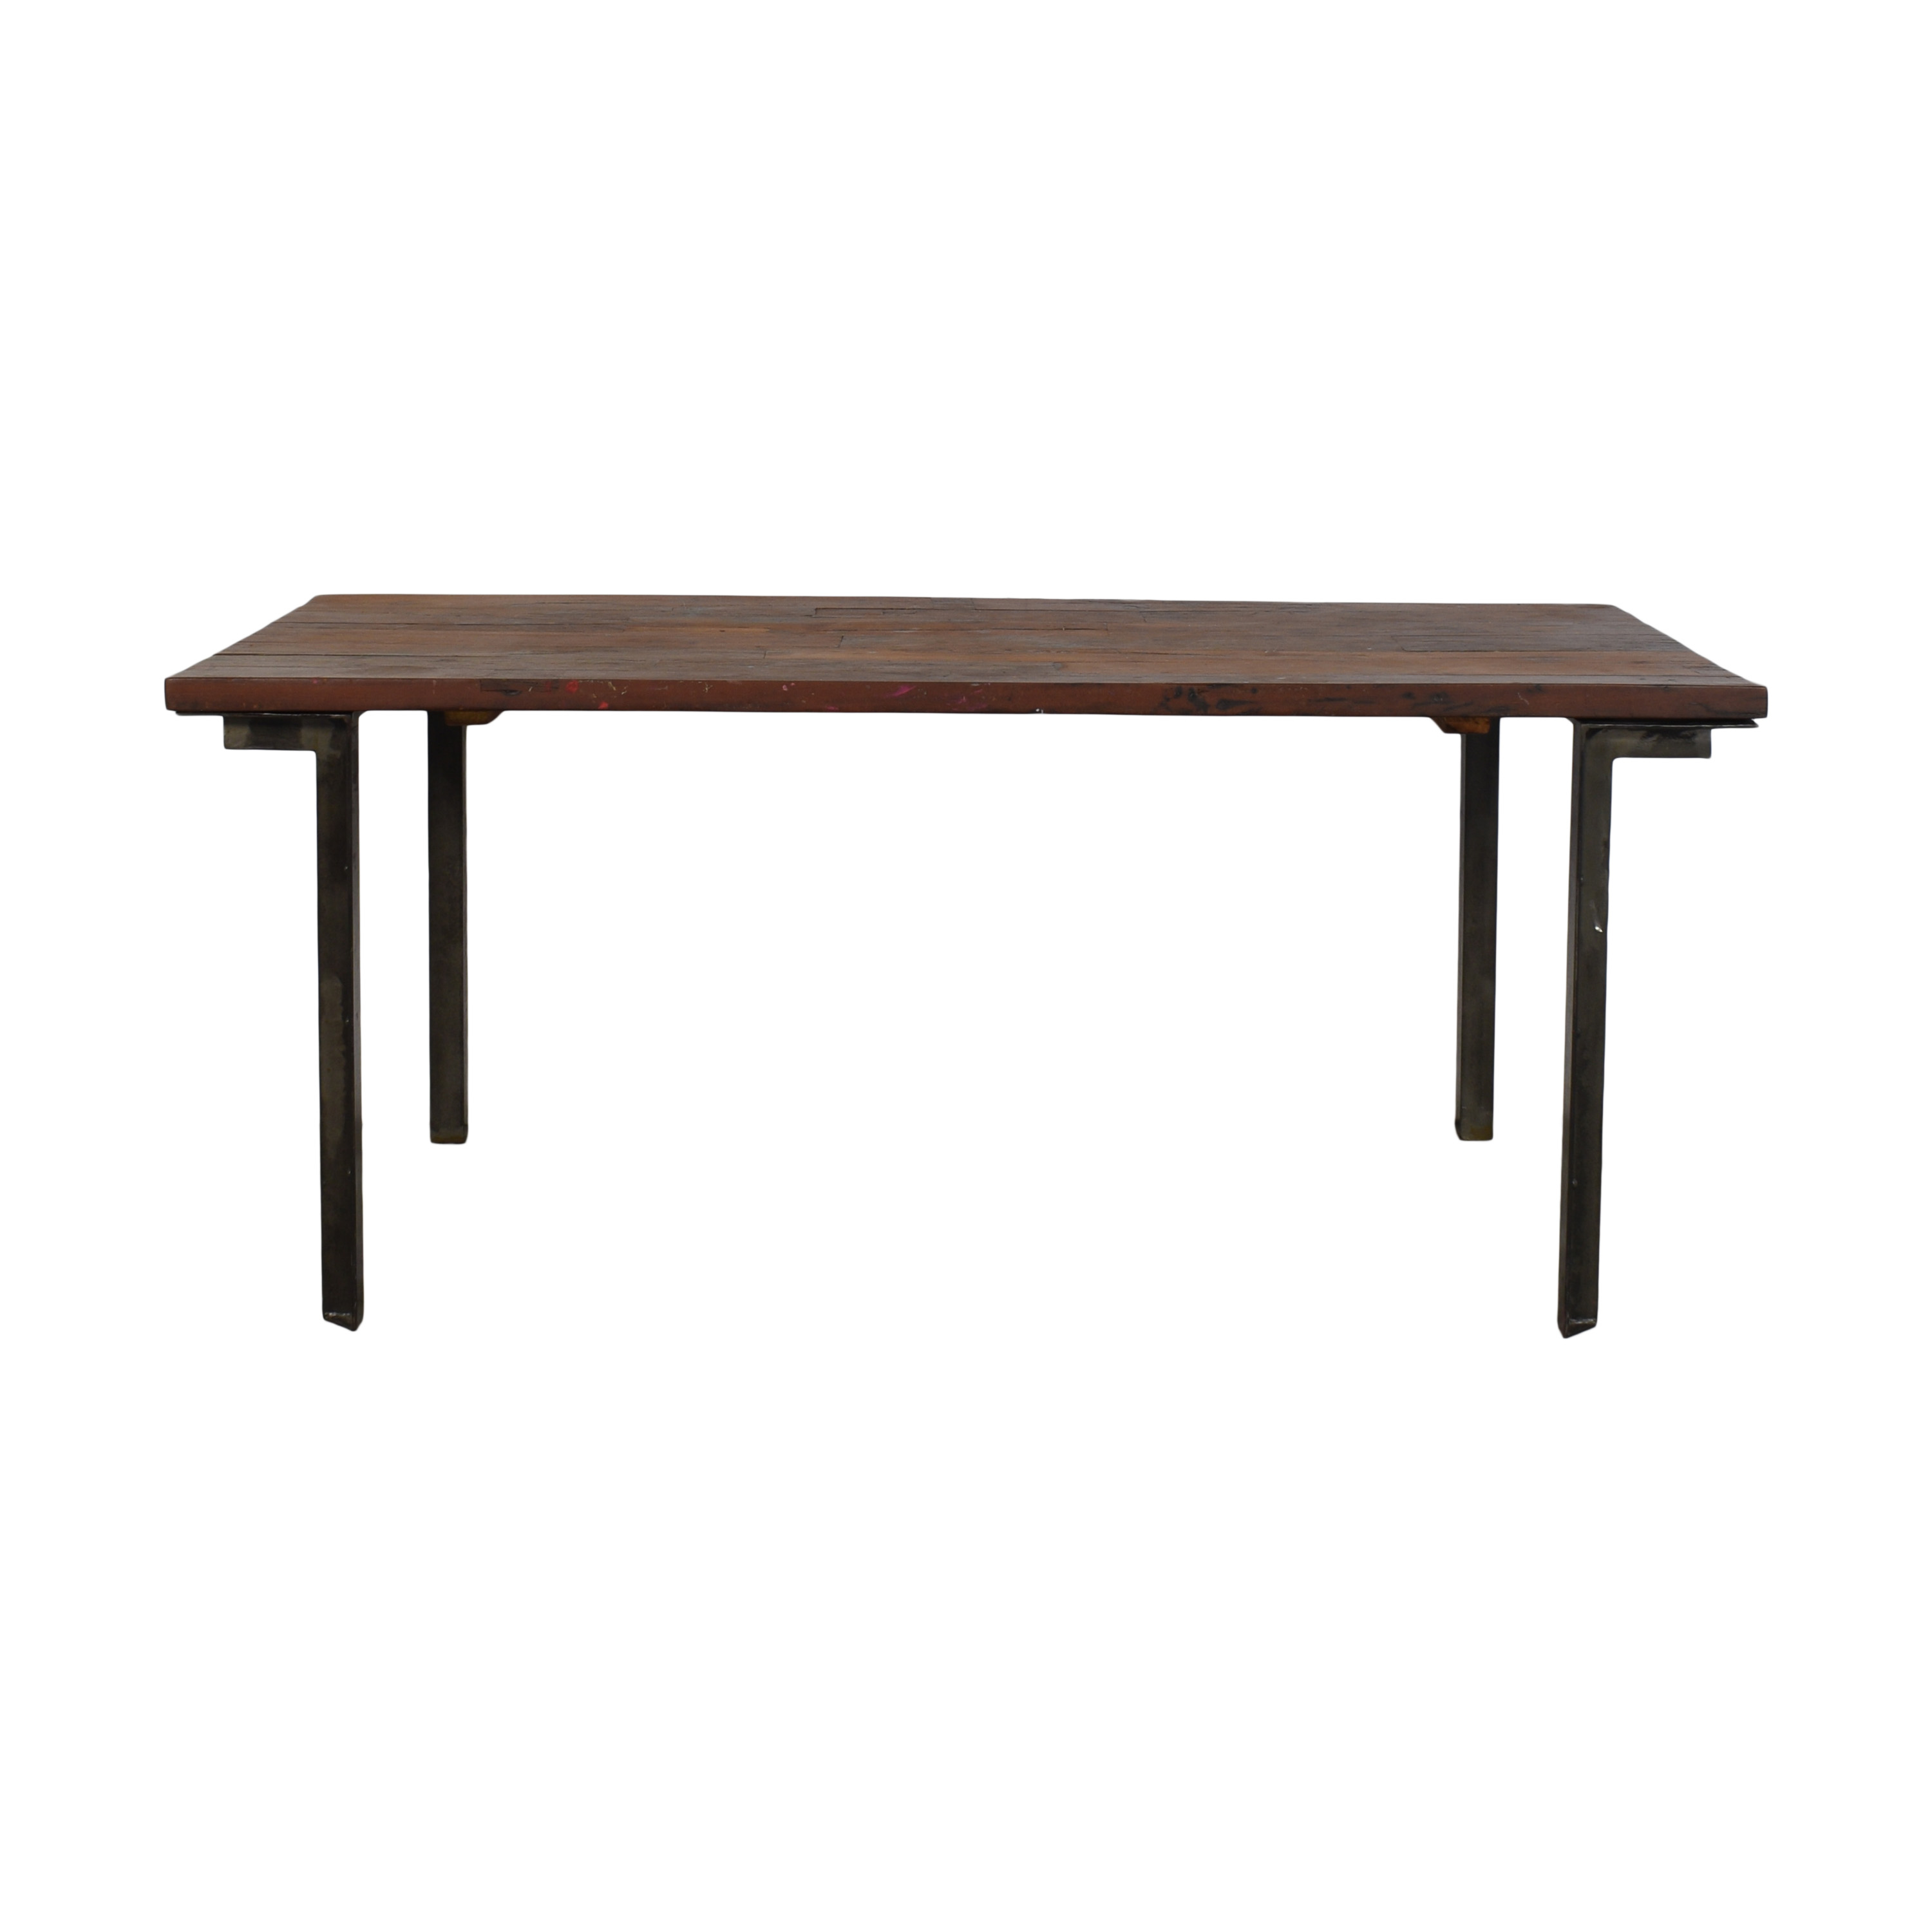 West Elm West Elm Industrial Dining Table nyc